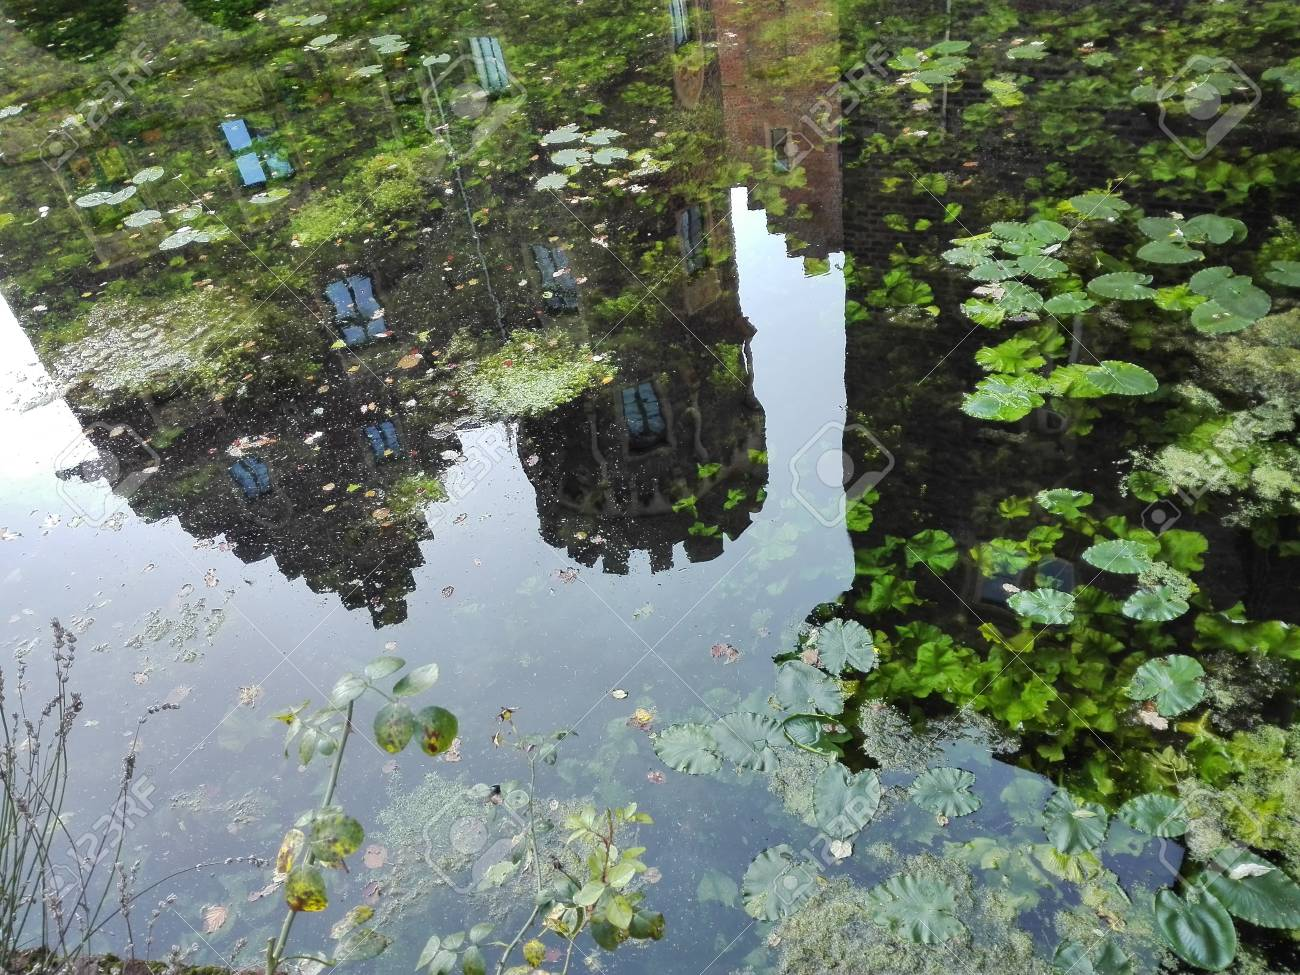 Mirroring - Silhouette of a castle façade mirrored in a moat, covered with aquatic plants. Germany 10.30.2016 - 68769726